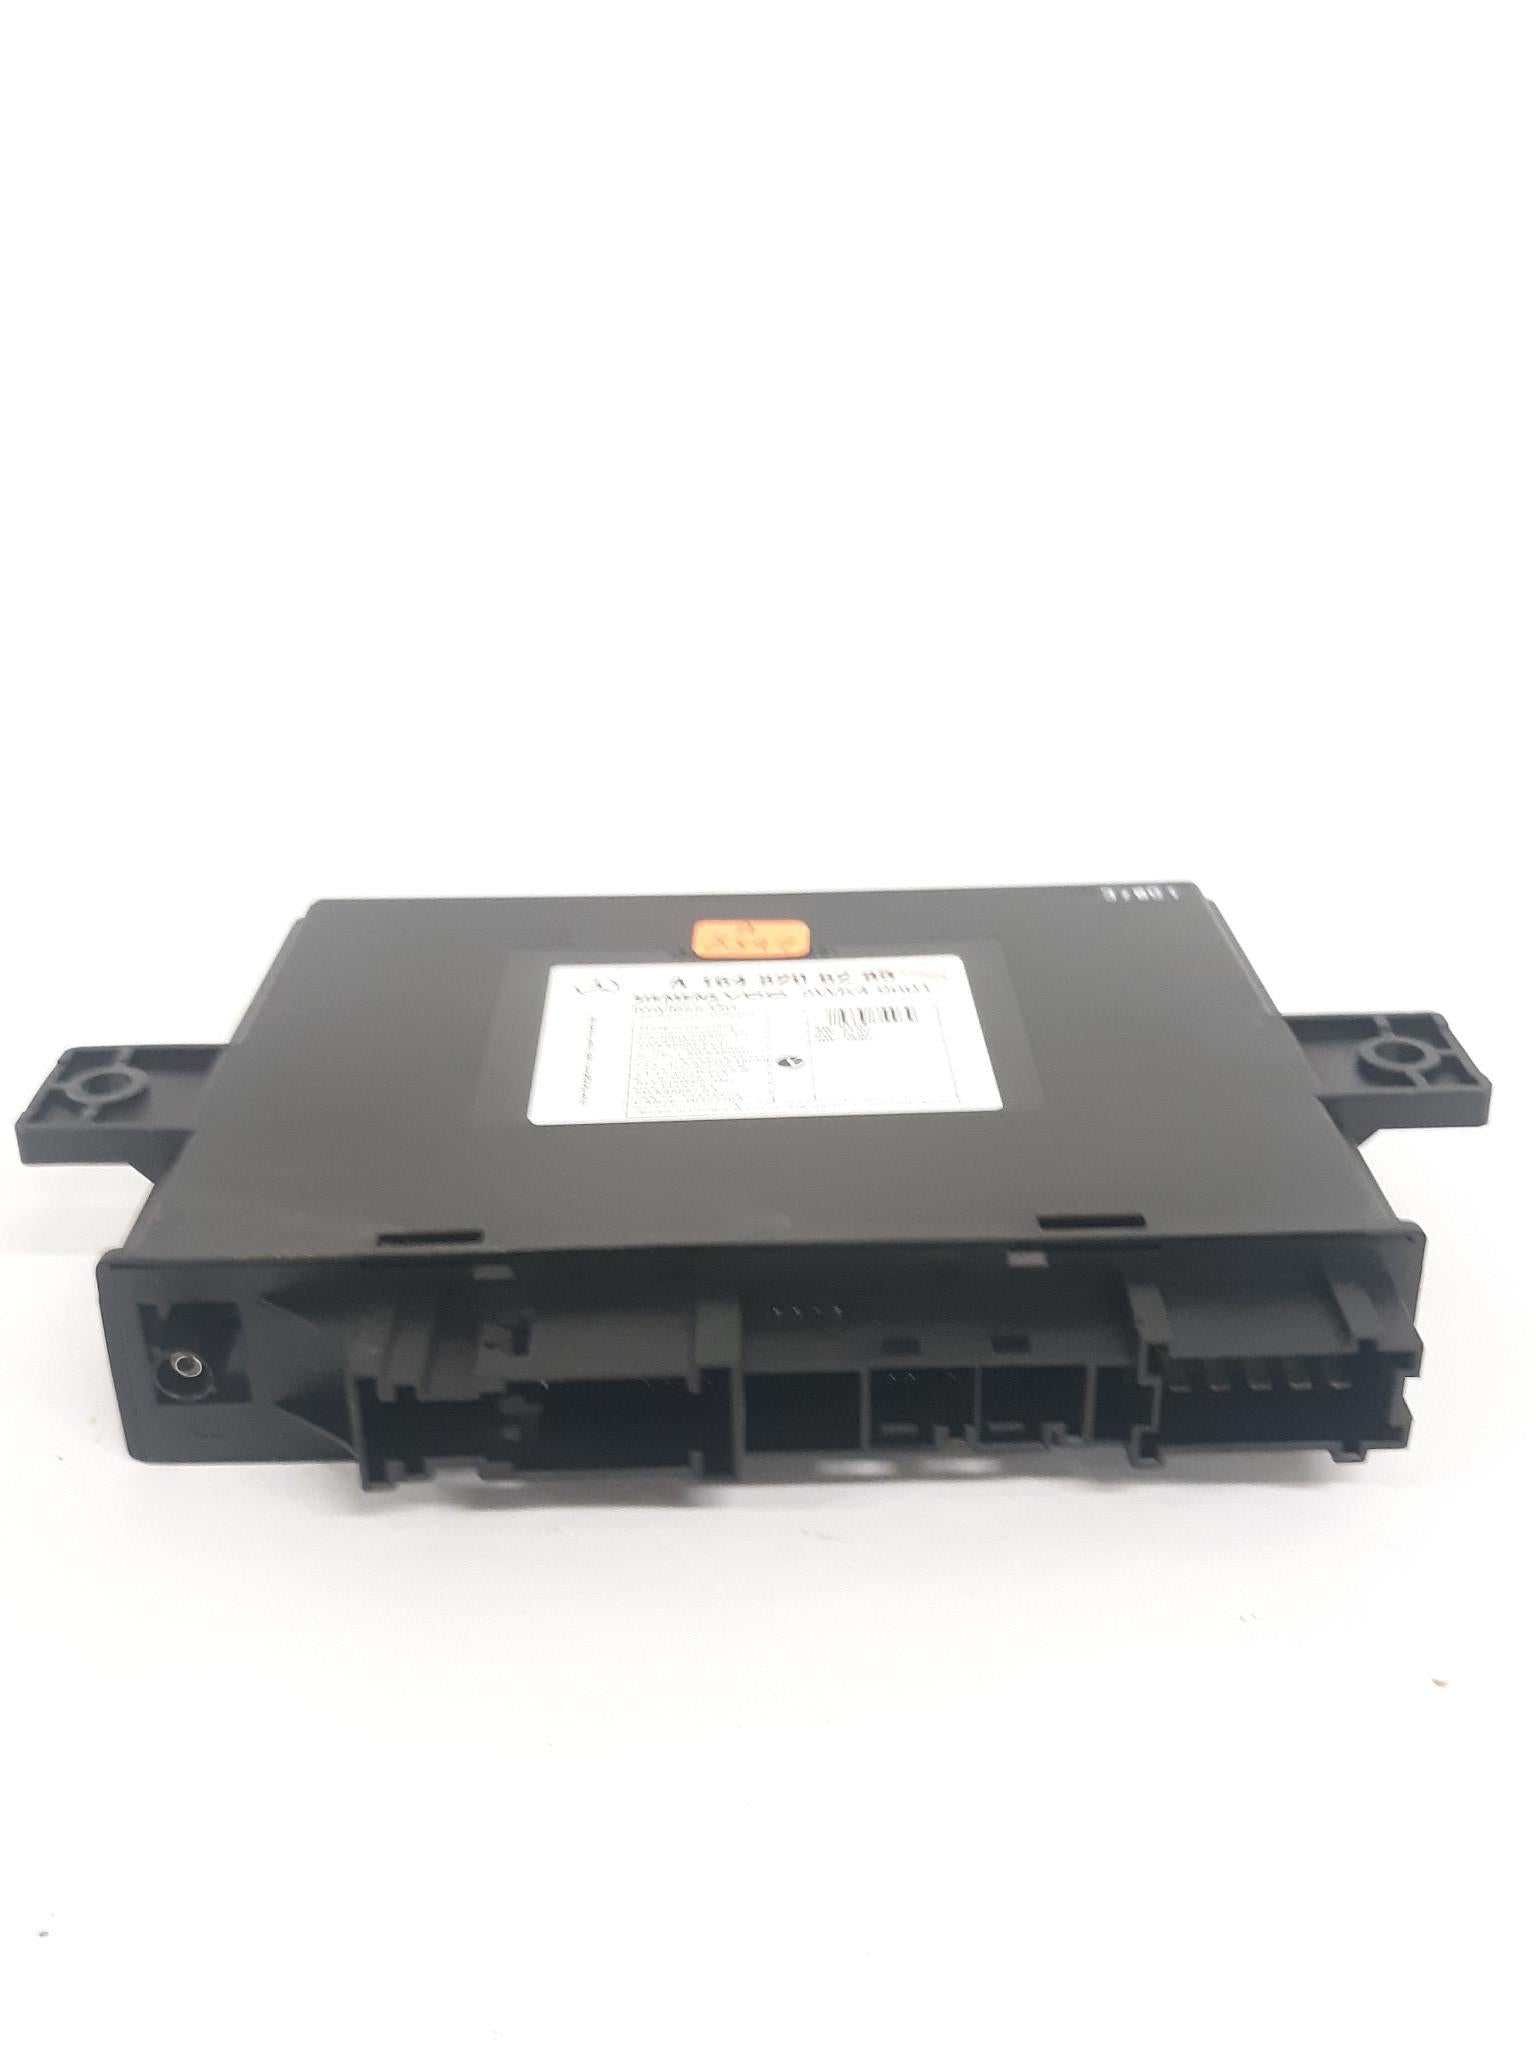 06 - 12 MERCEDES X164 W164 GL550 ML320 GL320 ML350 KEYLESS GO CONTROL MODULE OEM - Click Receive Auto Parts